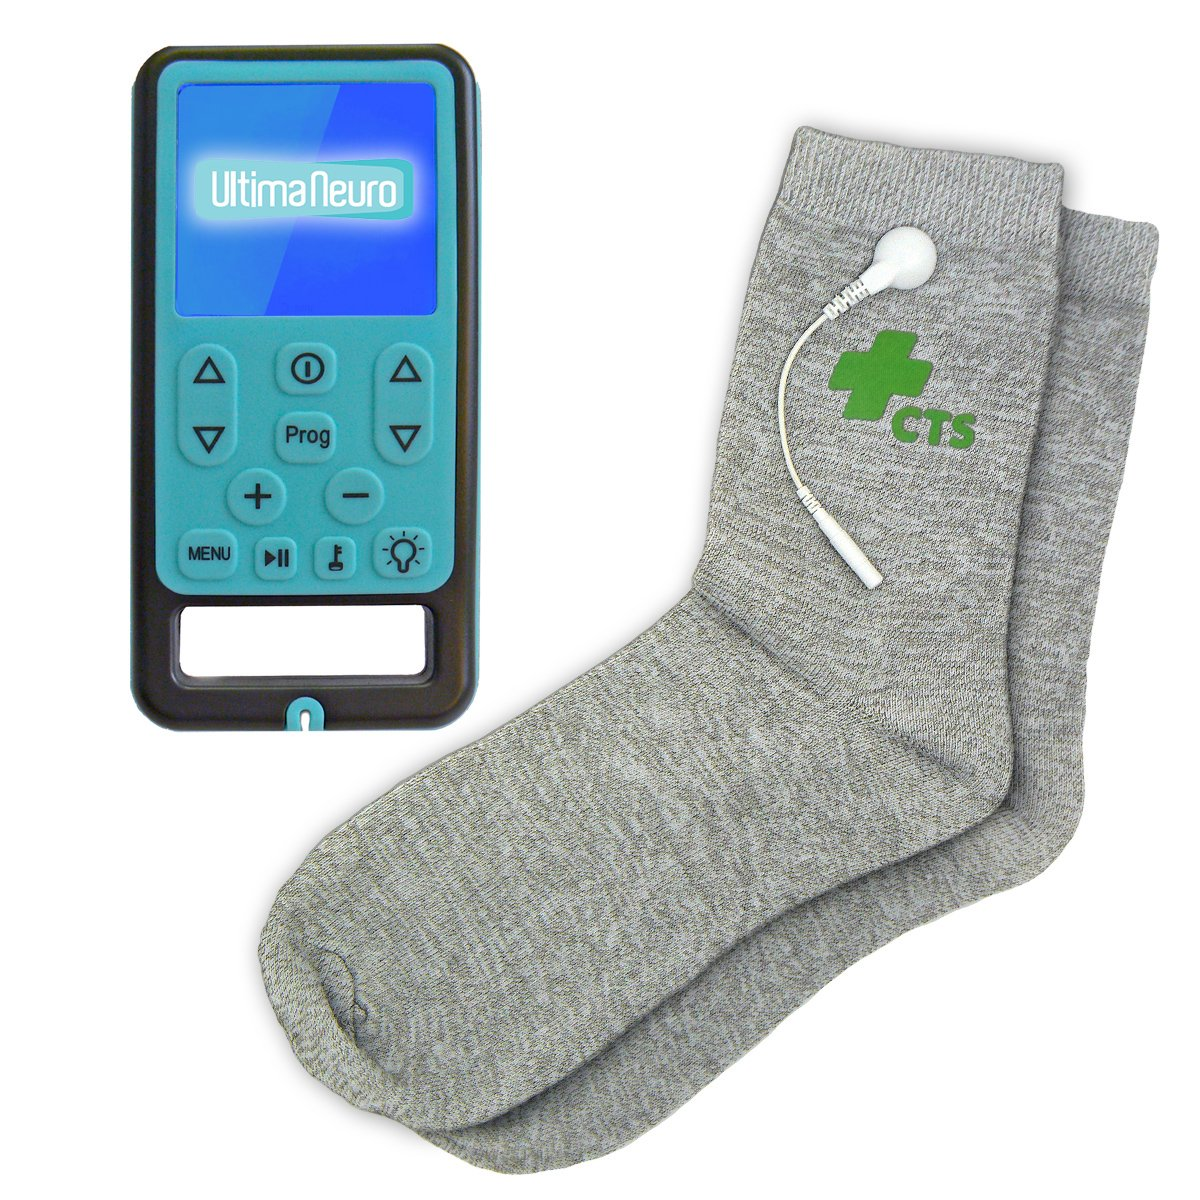 Ultima Neuro Neuropathy Feet System for Treatment & Relief of Peripheral, Diabetic & Poly Neuropathy Nerve Pain with Conductive Socks Pair by Conductive Therapy Shop